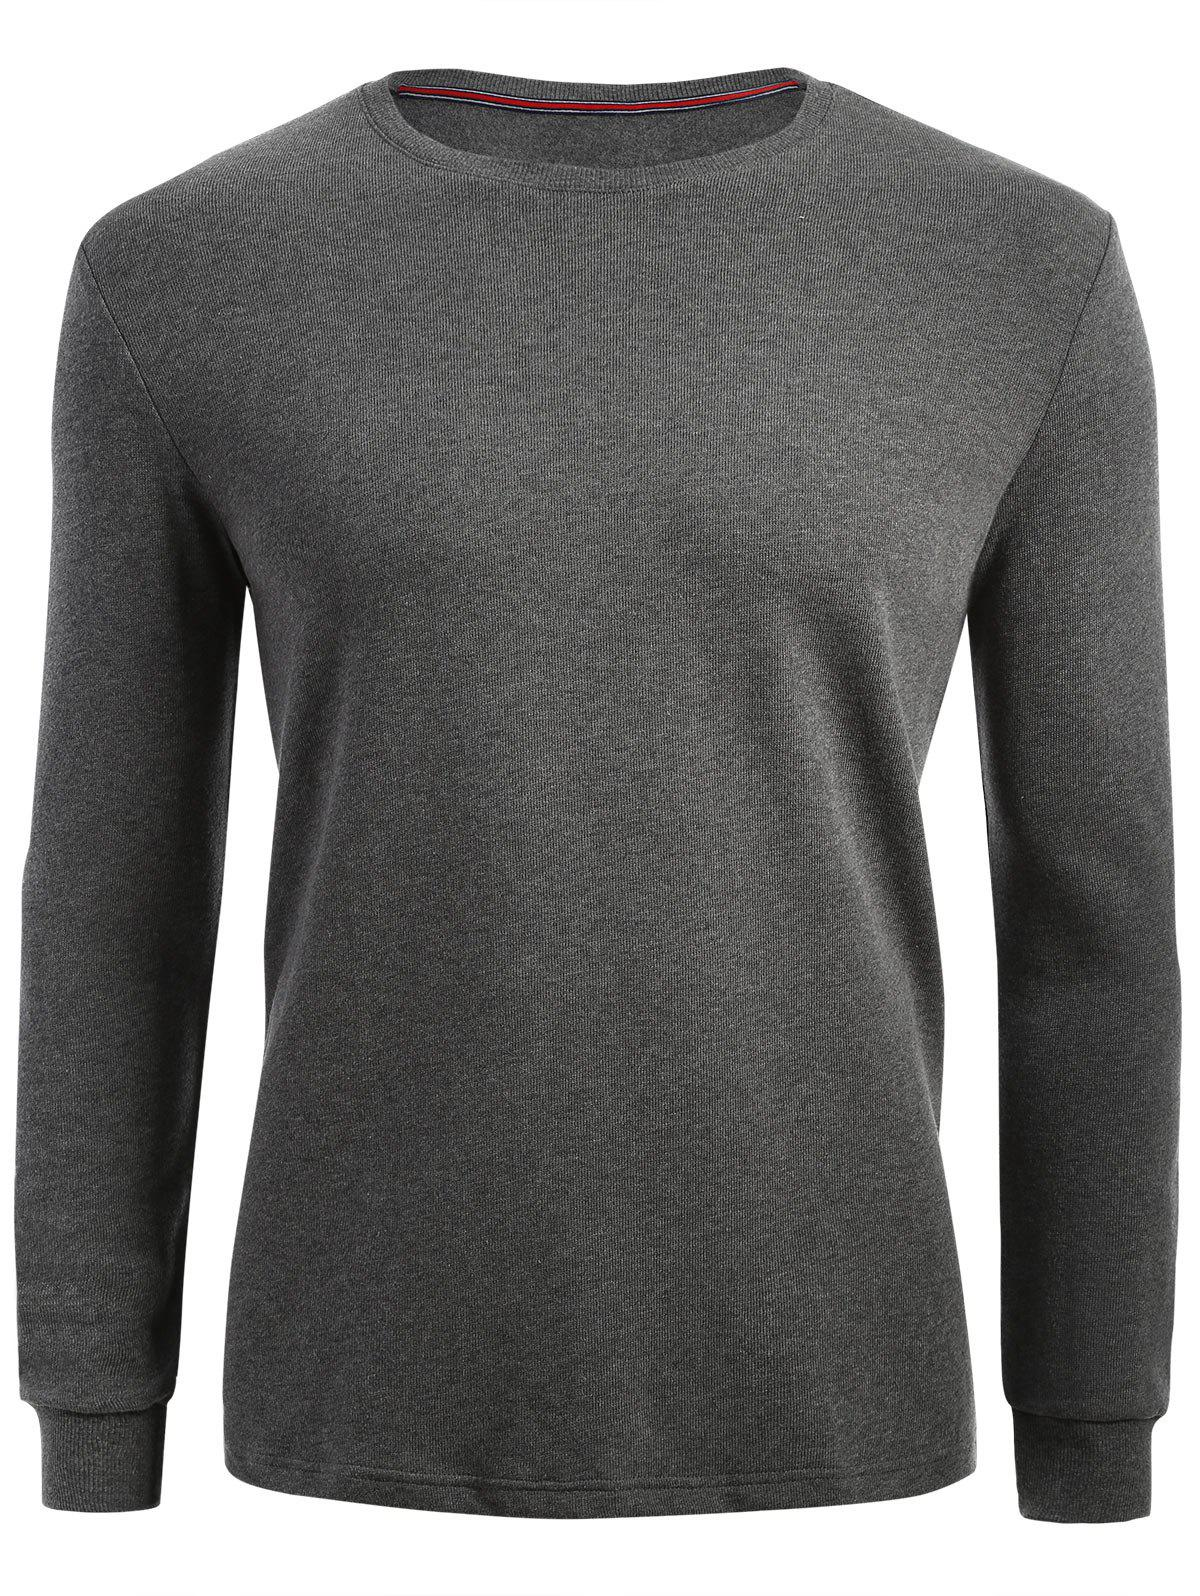 Plain Cuffed Long Sleeve T-shirt - HEATHER GRAY XL